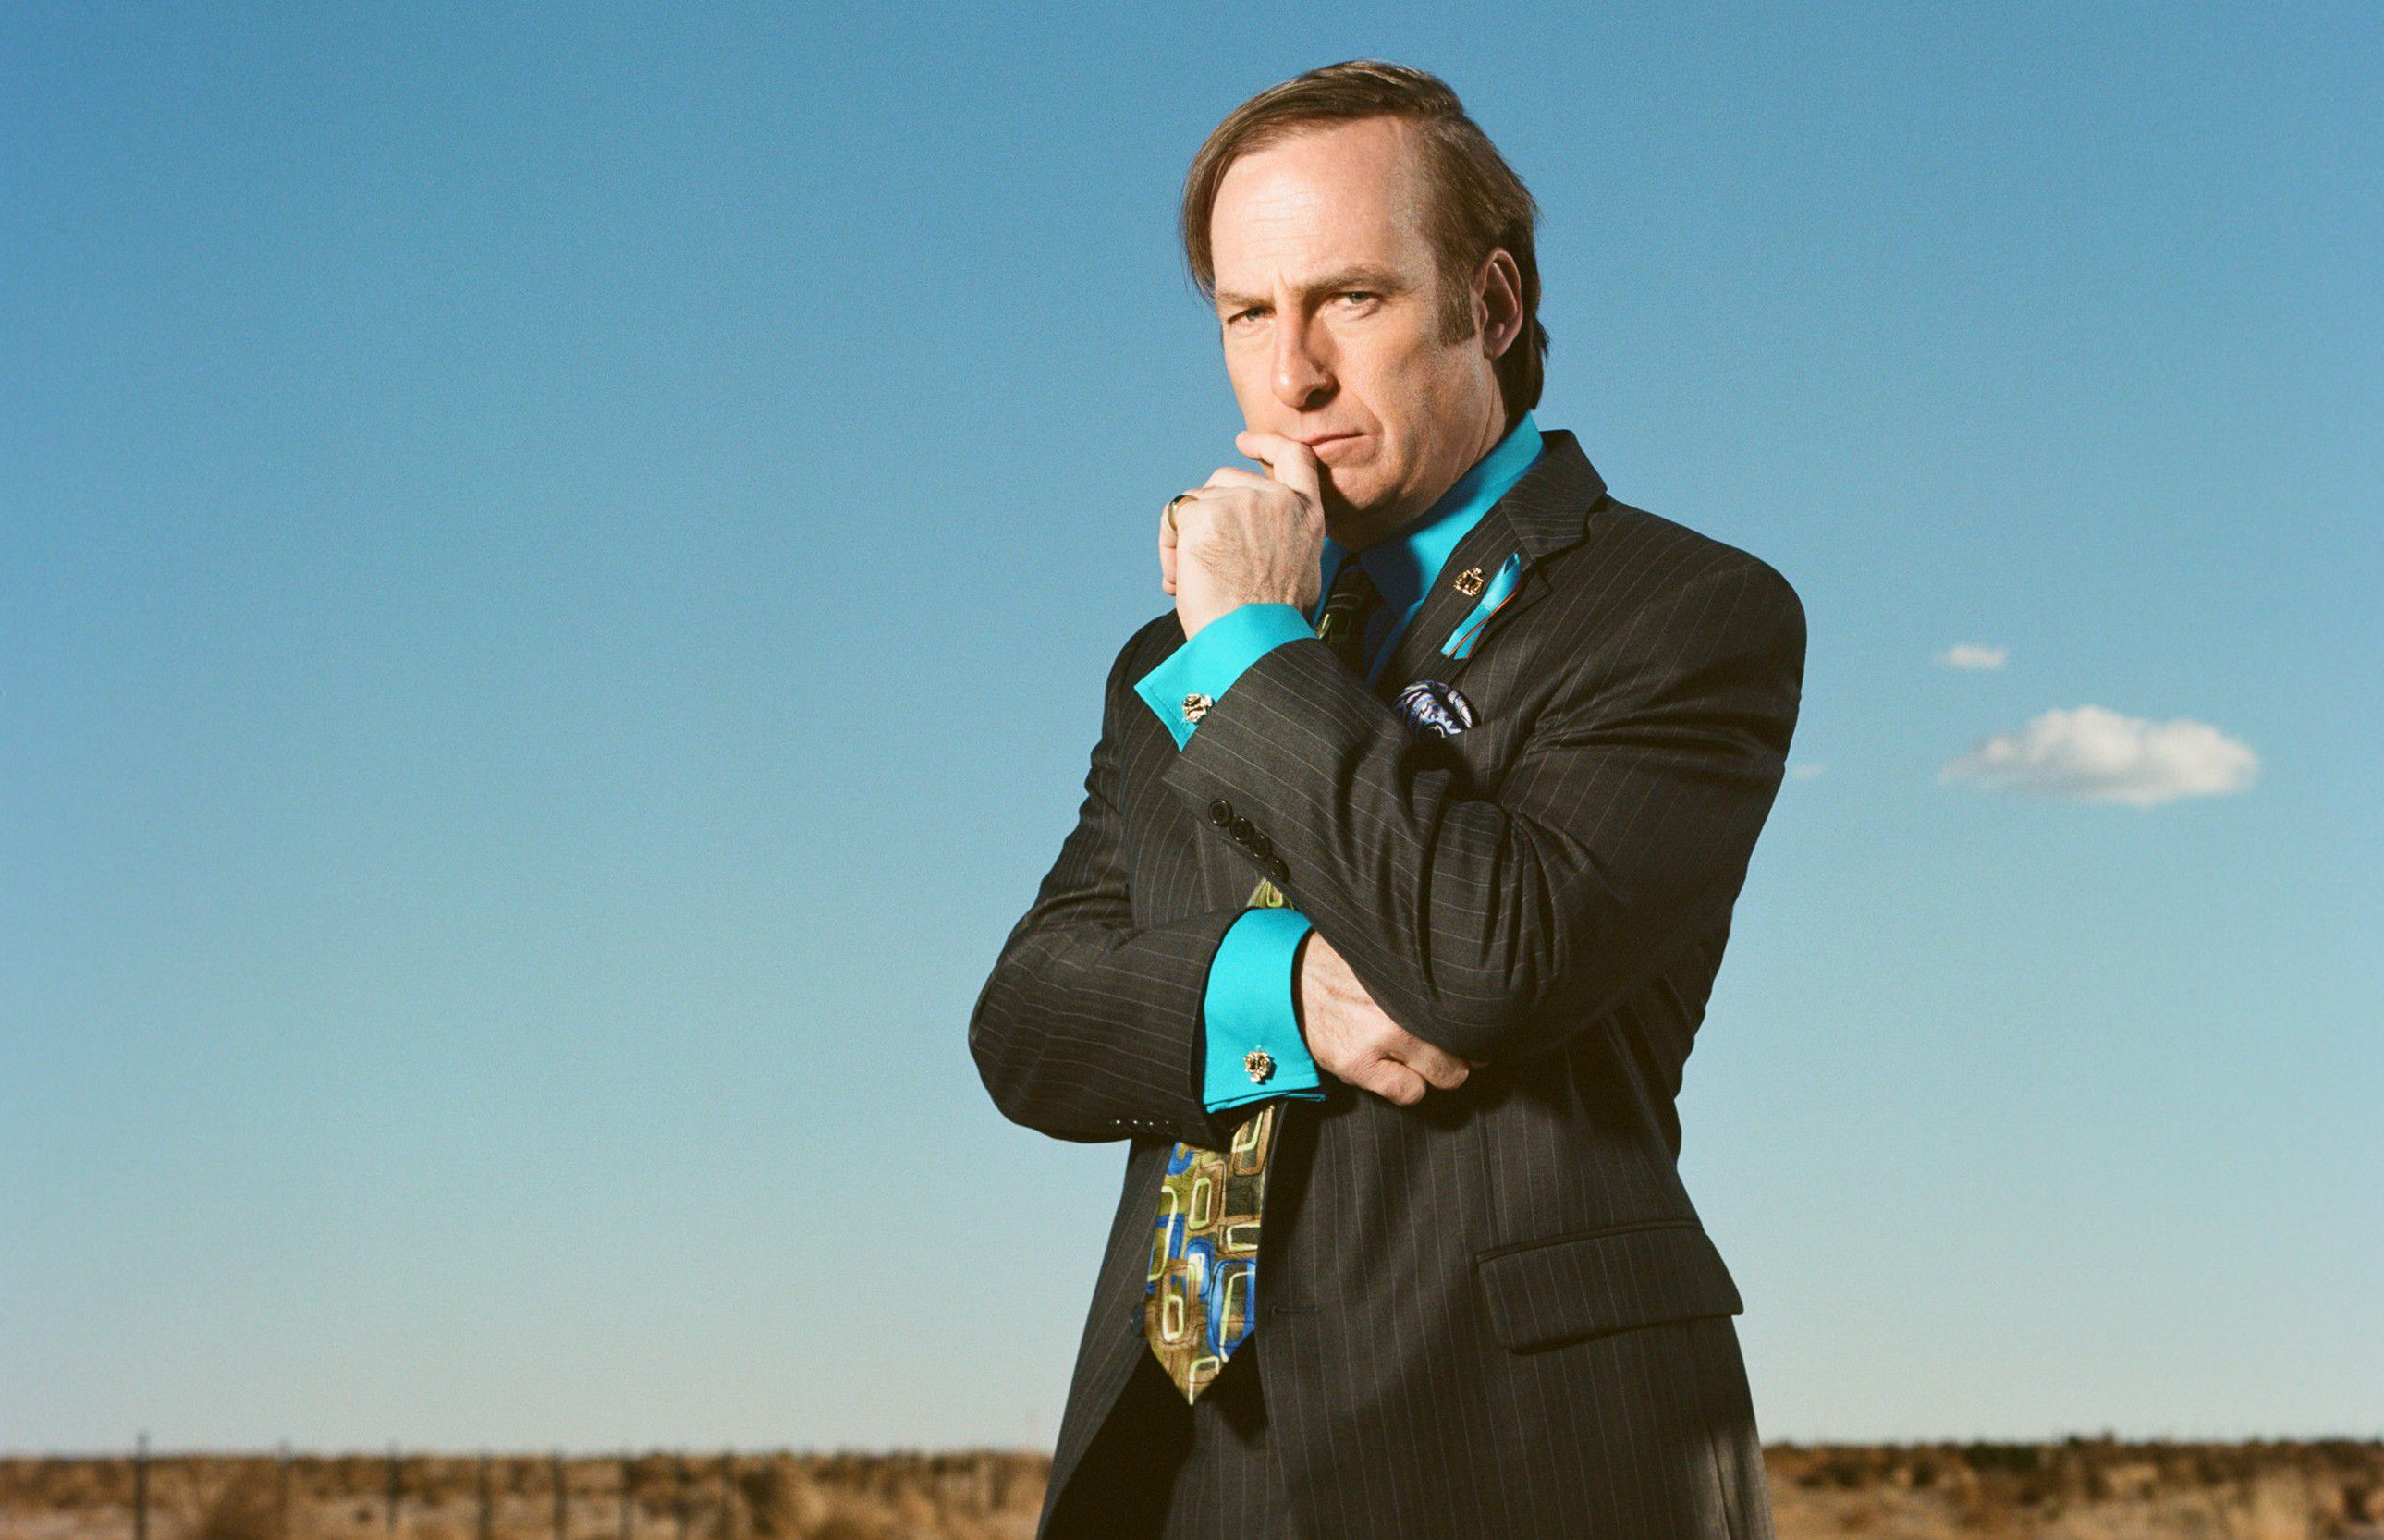 Breaking Bad creator Vince Gilligan casts doubt on Better Call Saul: 'Goodman is intrinsically undramatic'